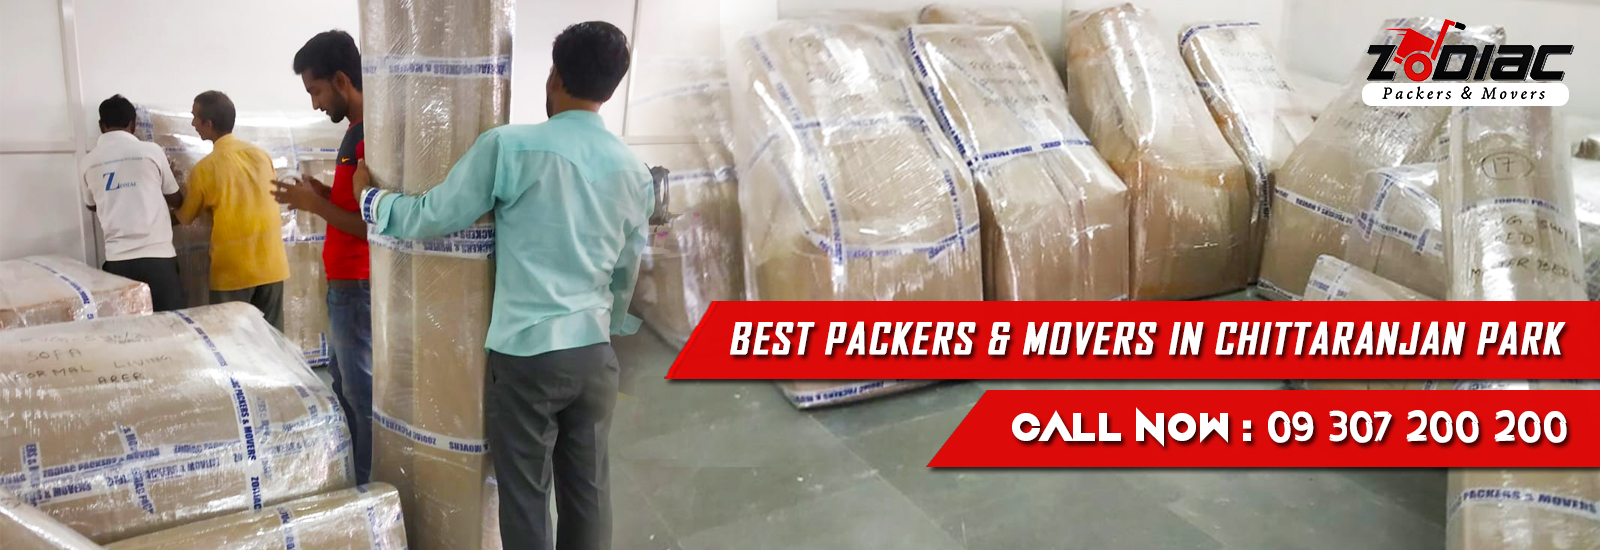 Packers and Movers in Chittaranjan Park